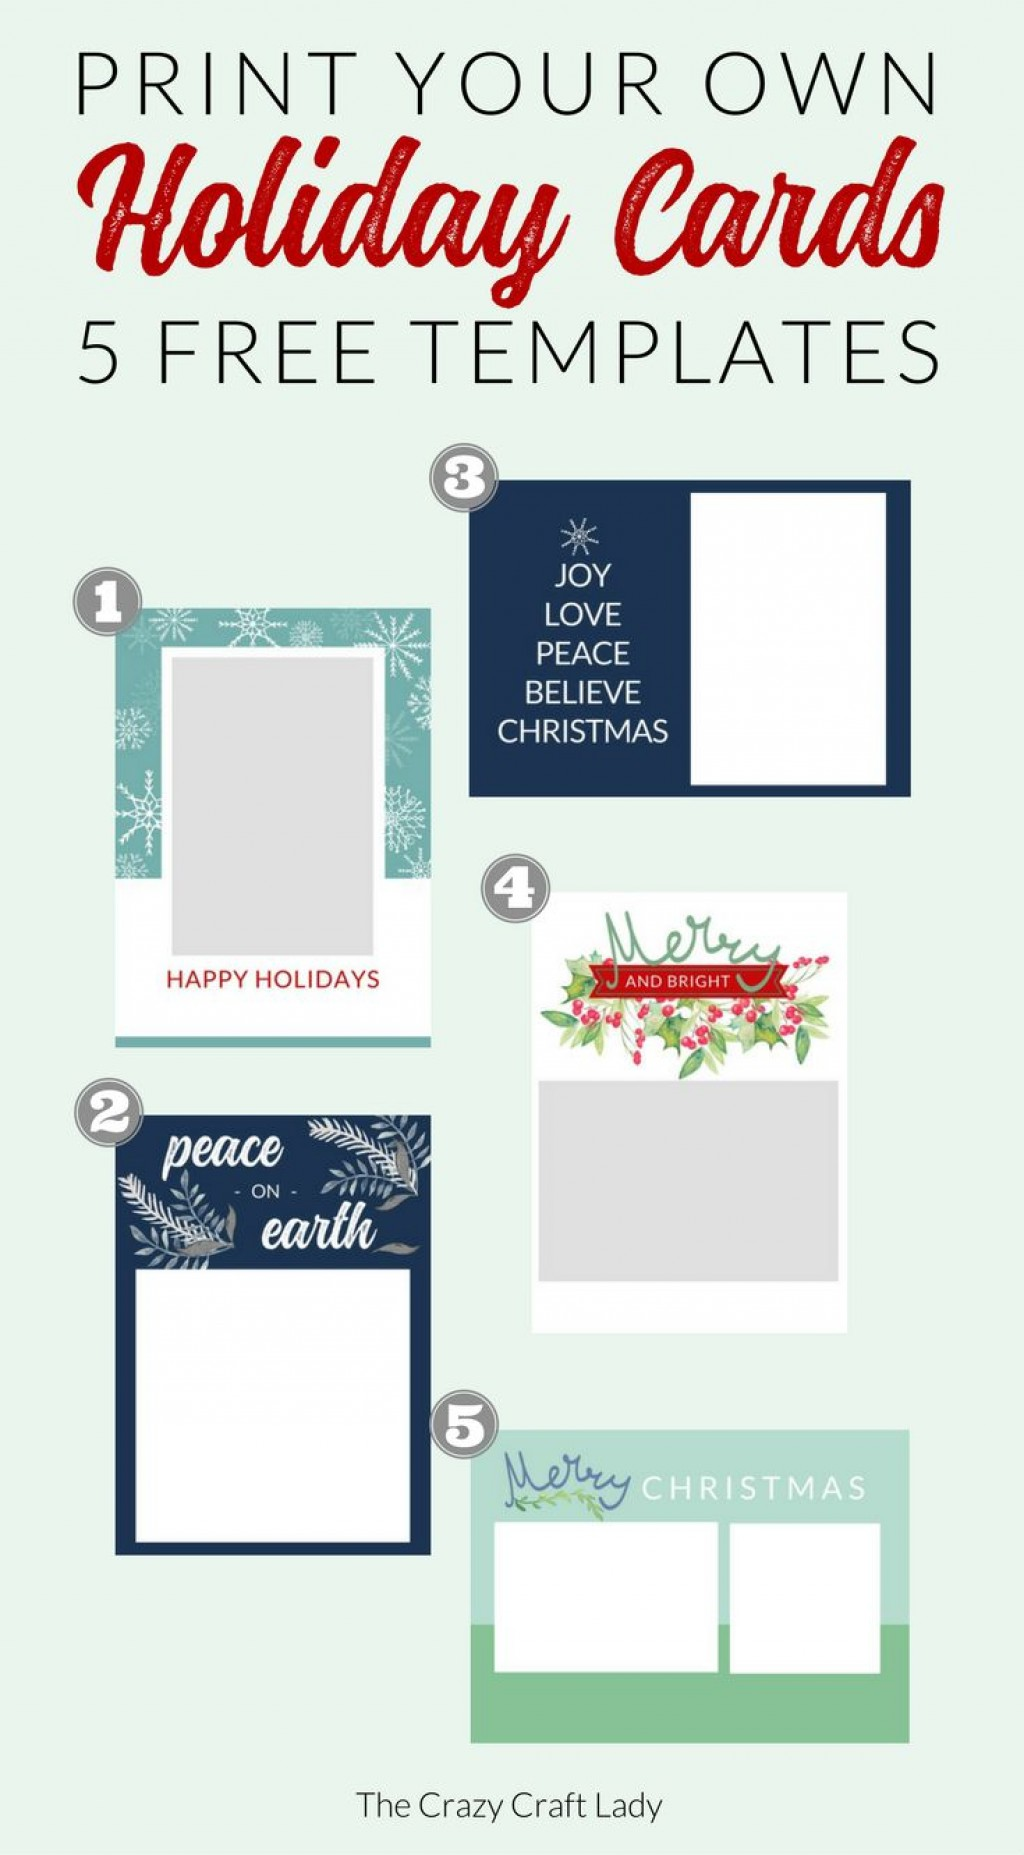 007 Fantastic Free Download Holiday Card Template Concept Large